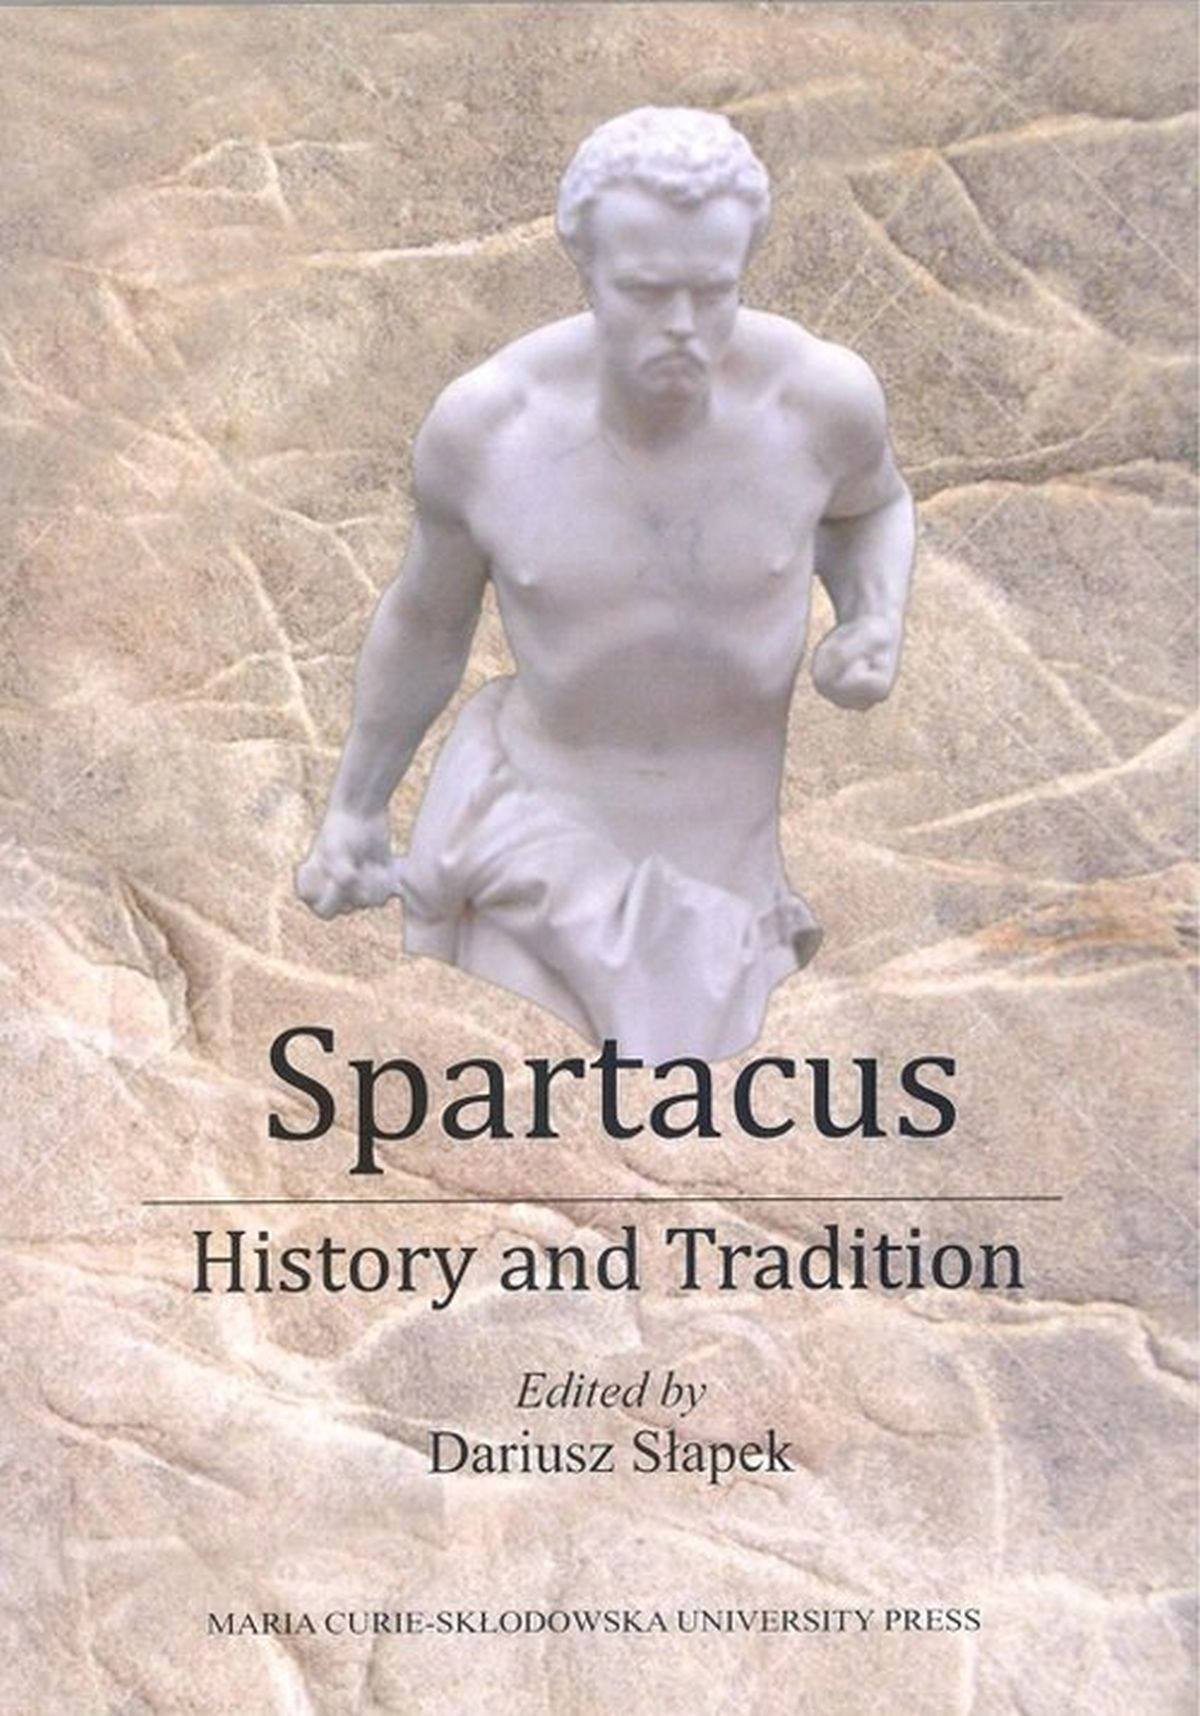 Dariusz Słapek (red.), Spartacus. History and Tradition